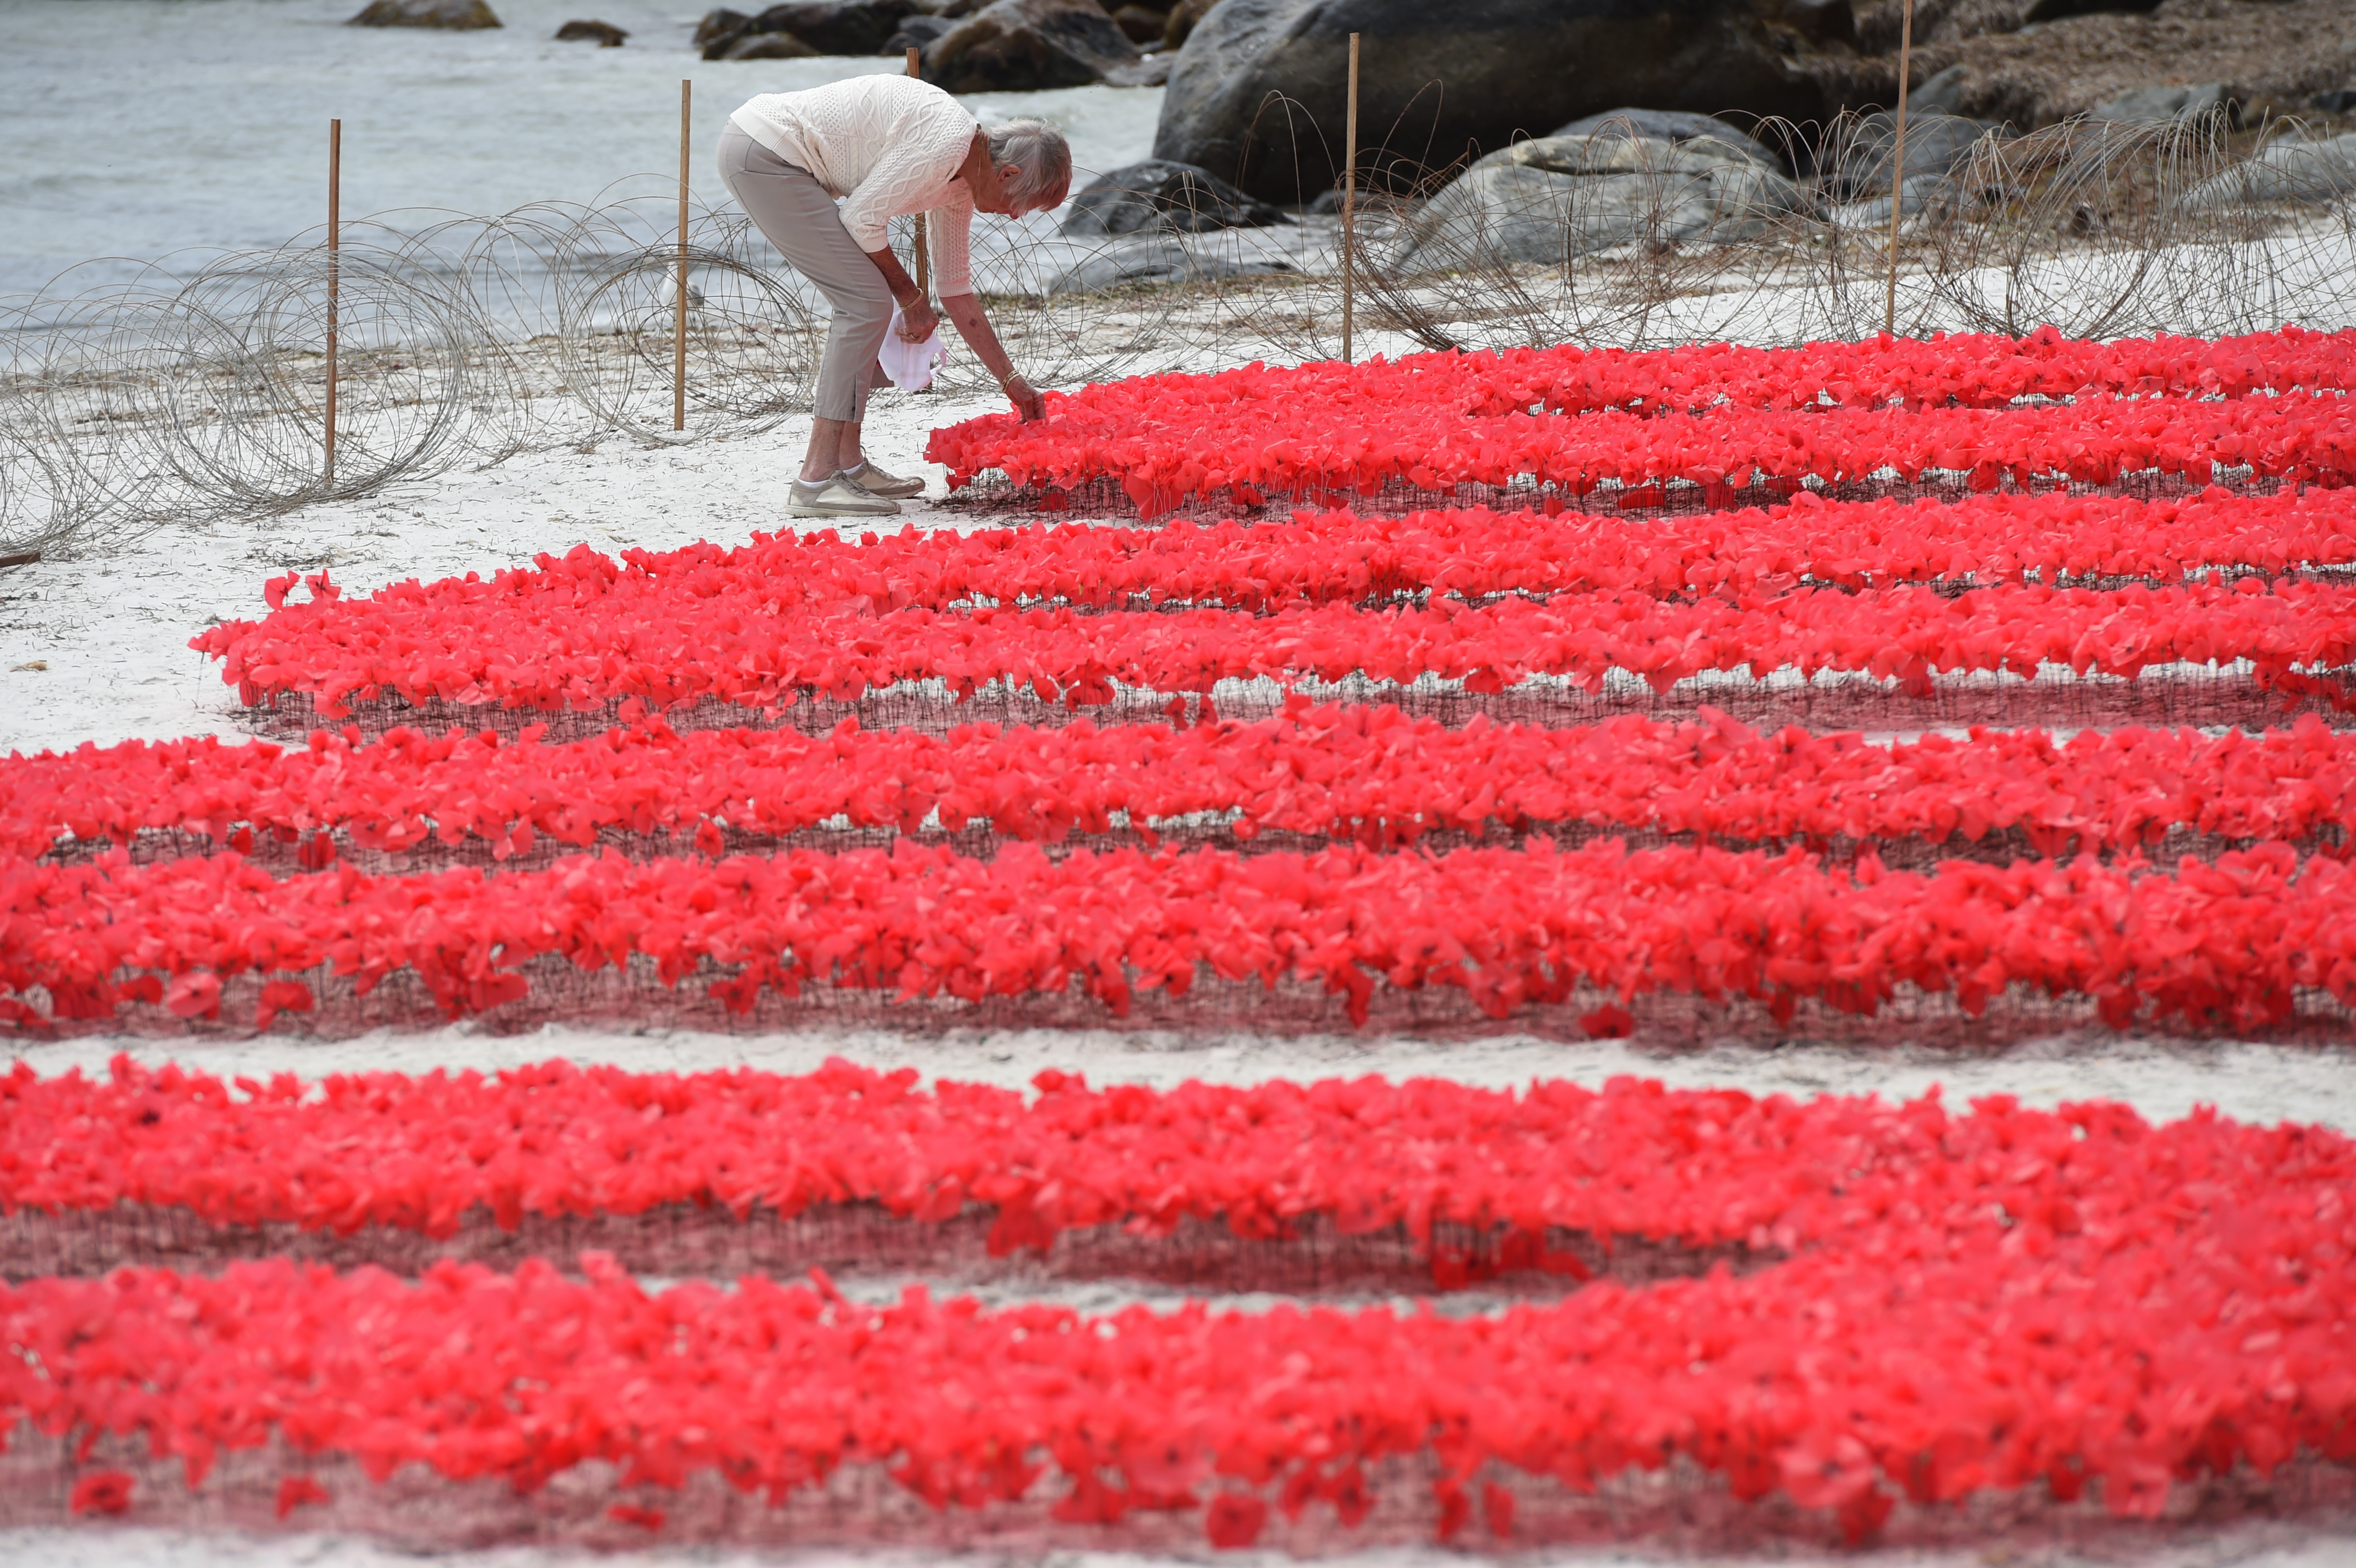 Drawn poppy anzac poppy Honour have convoy placed poppies